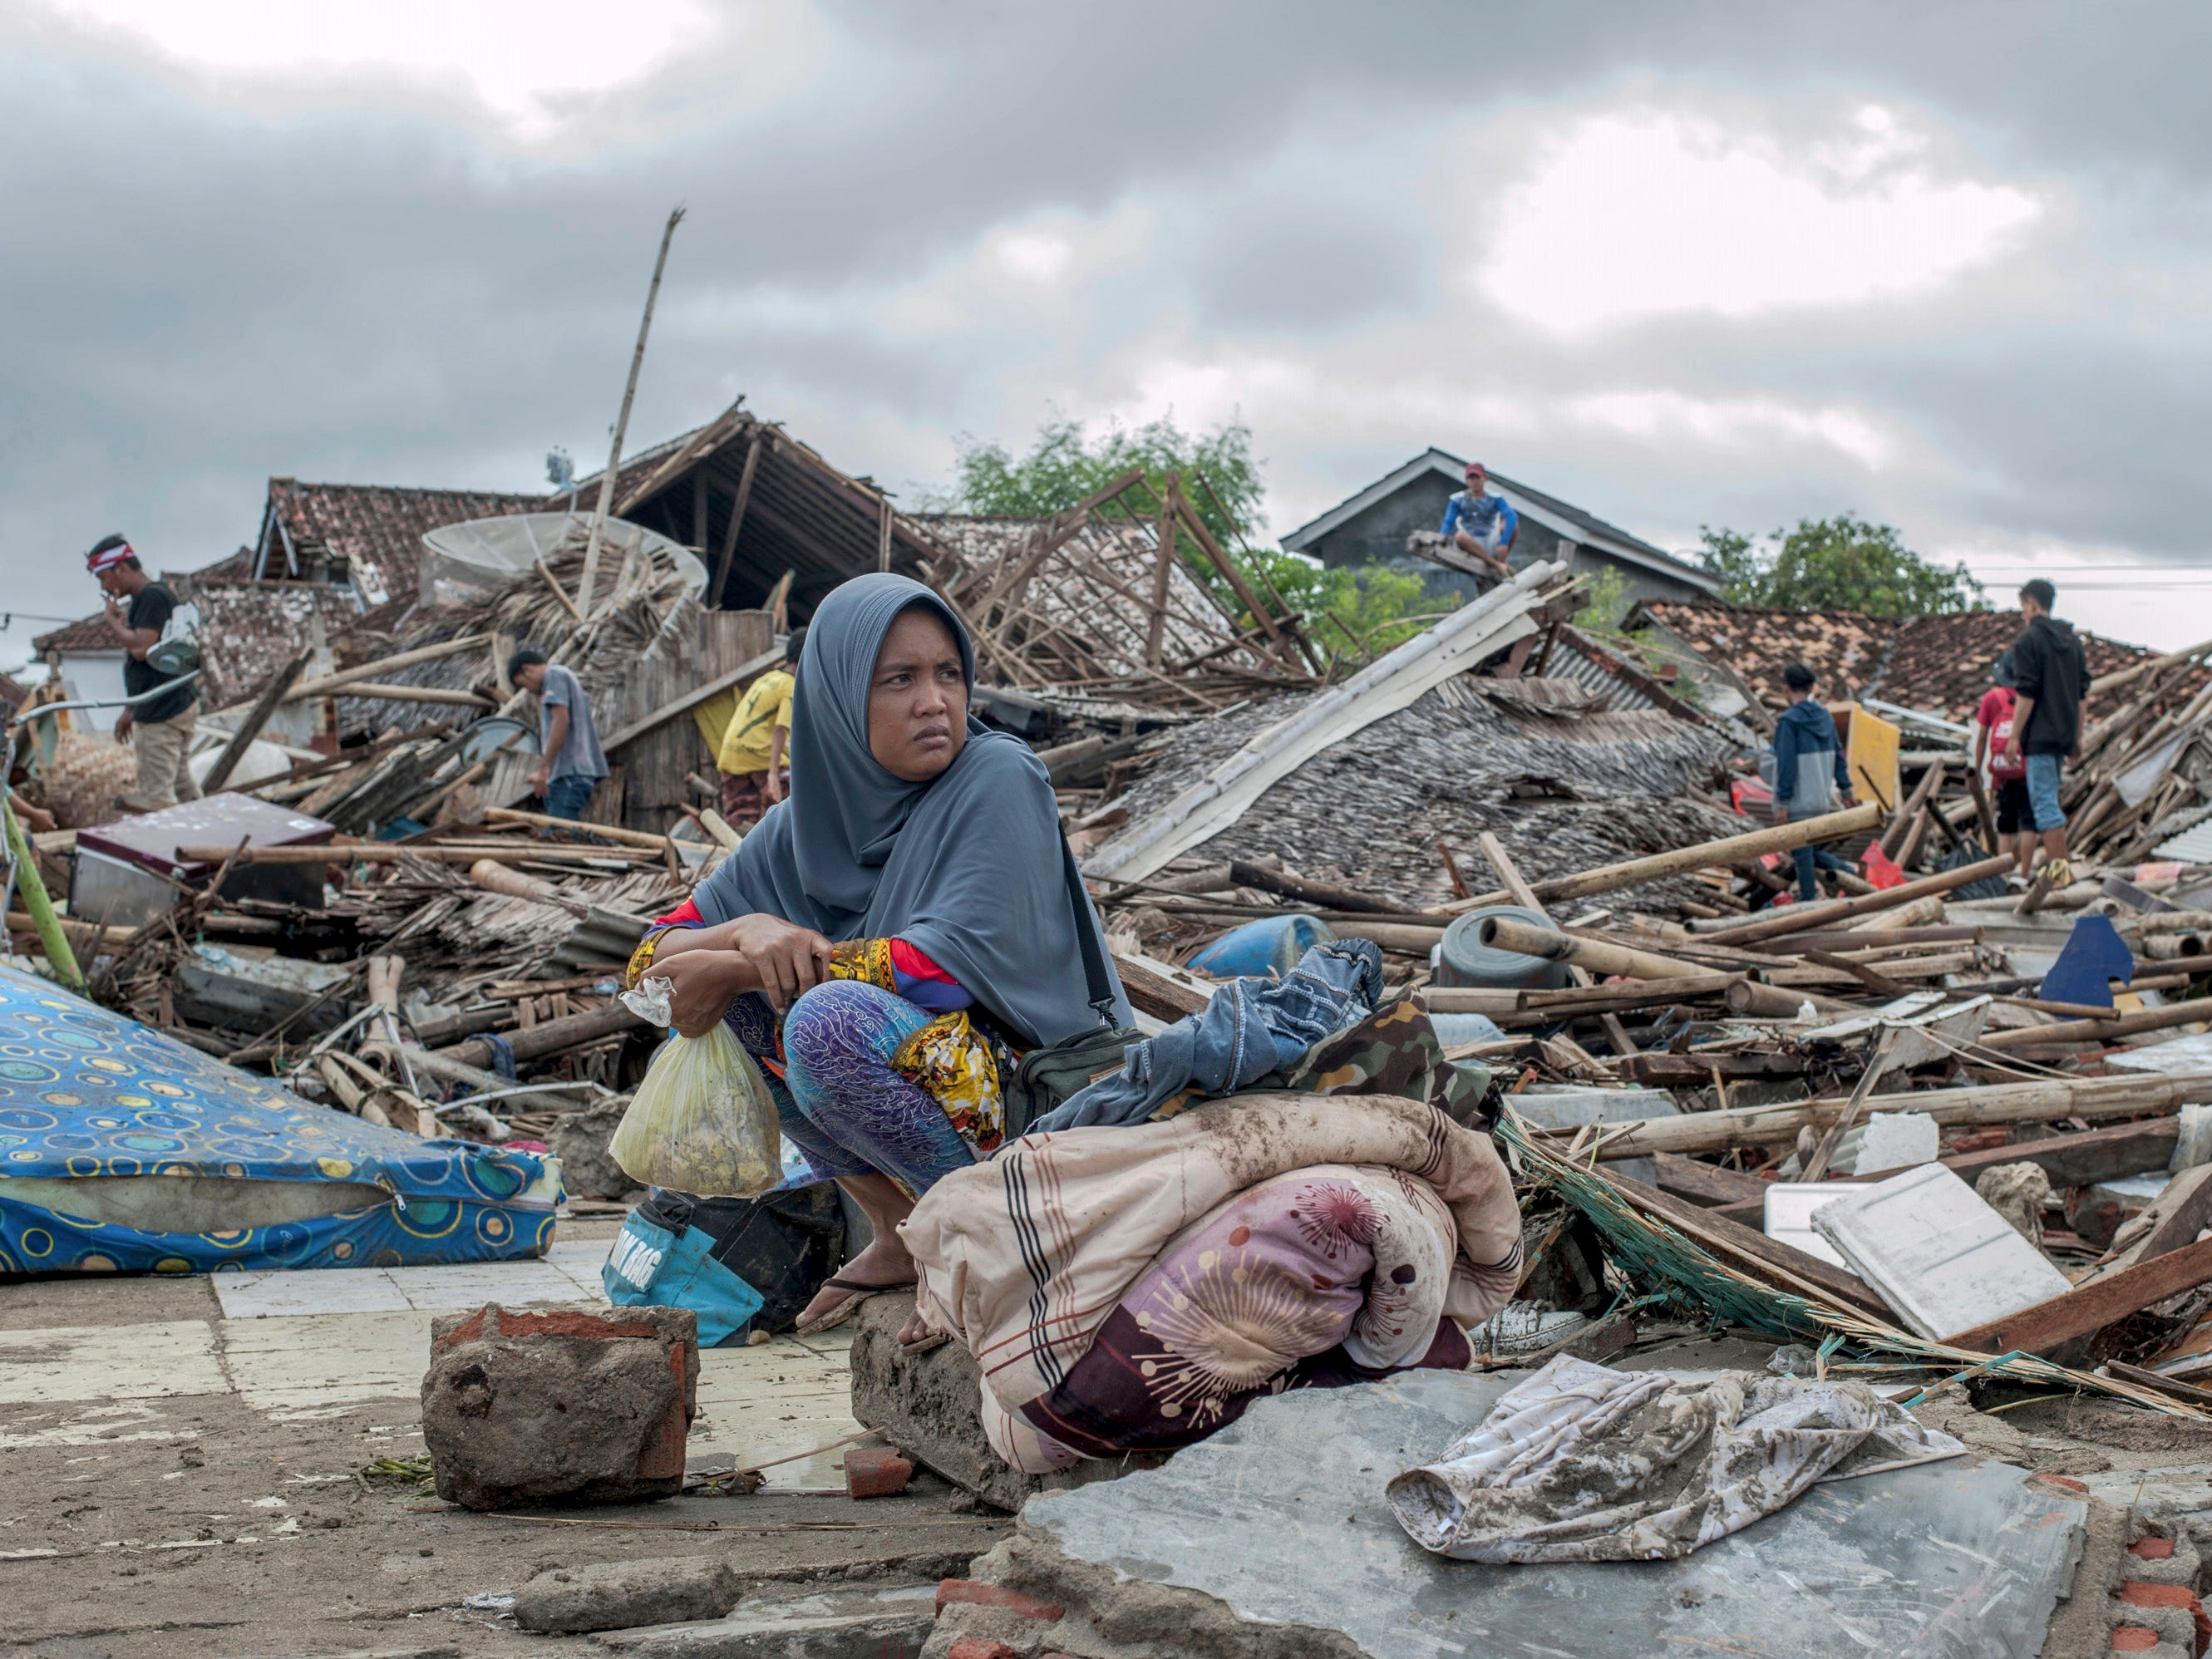 A tsunami survivor sits on a piece of debris as she salvages items from the location of her house in Sumur, Indonesia, Dec. 24, 2018. Doctors worked to save injured victims while members of the military and volunteers scoured debris-strewn beaches in search of survivors after a deadly tsunami gushed ashore without warning on Indonesian islands on a busy holiday weekend.